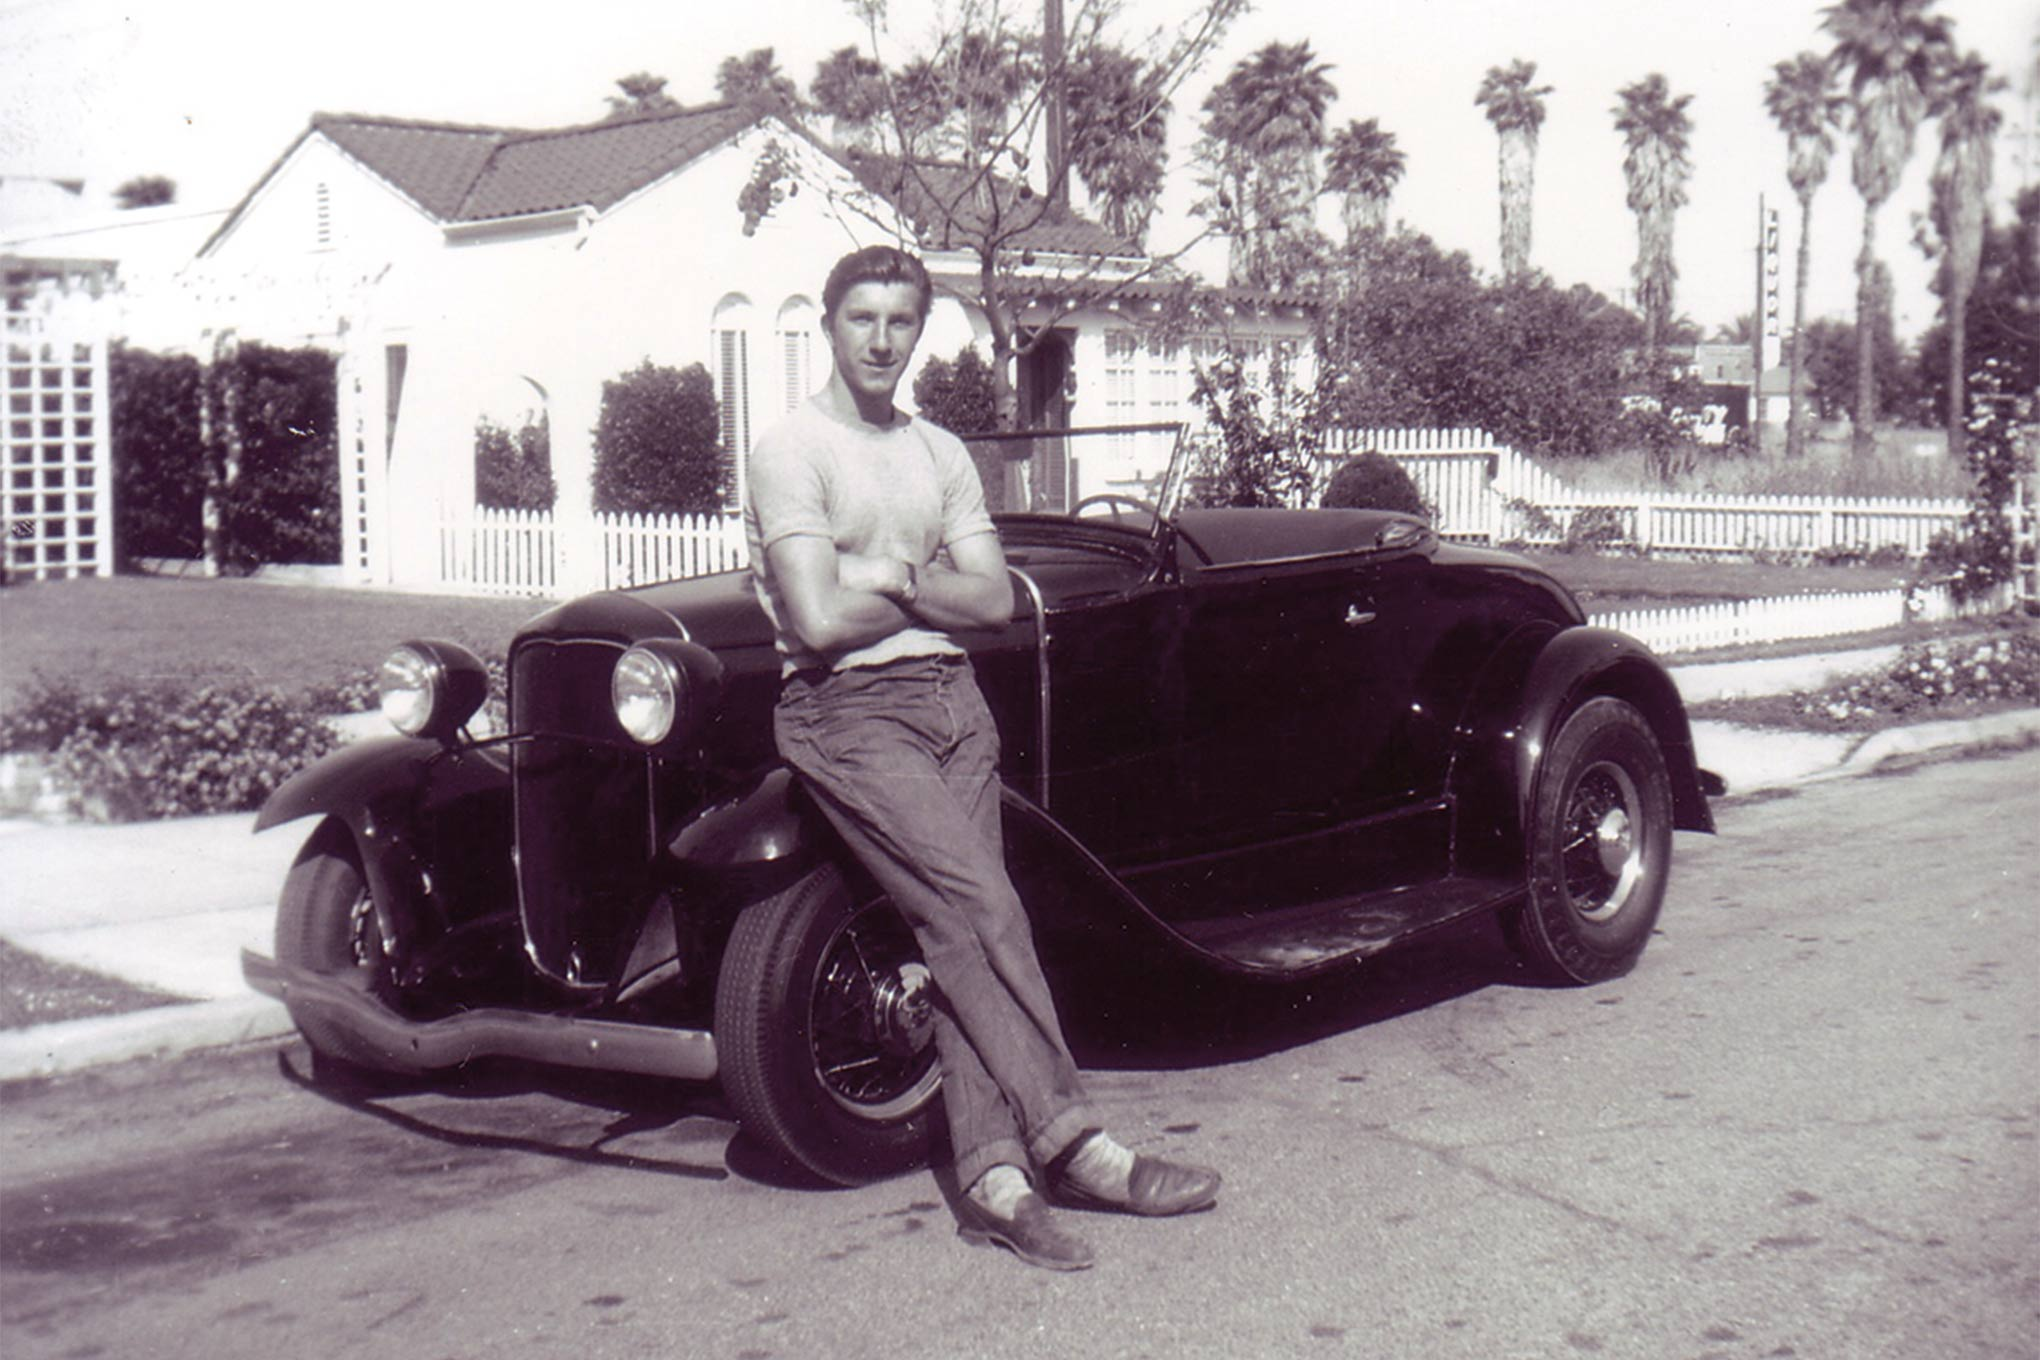 Dick while well-known for his Model A's he built he was also into the iconic 1930 Ford roadster too.